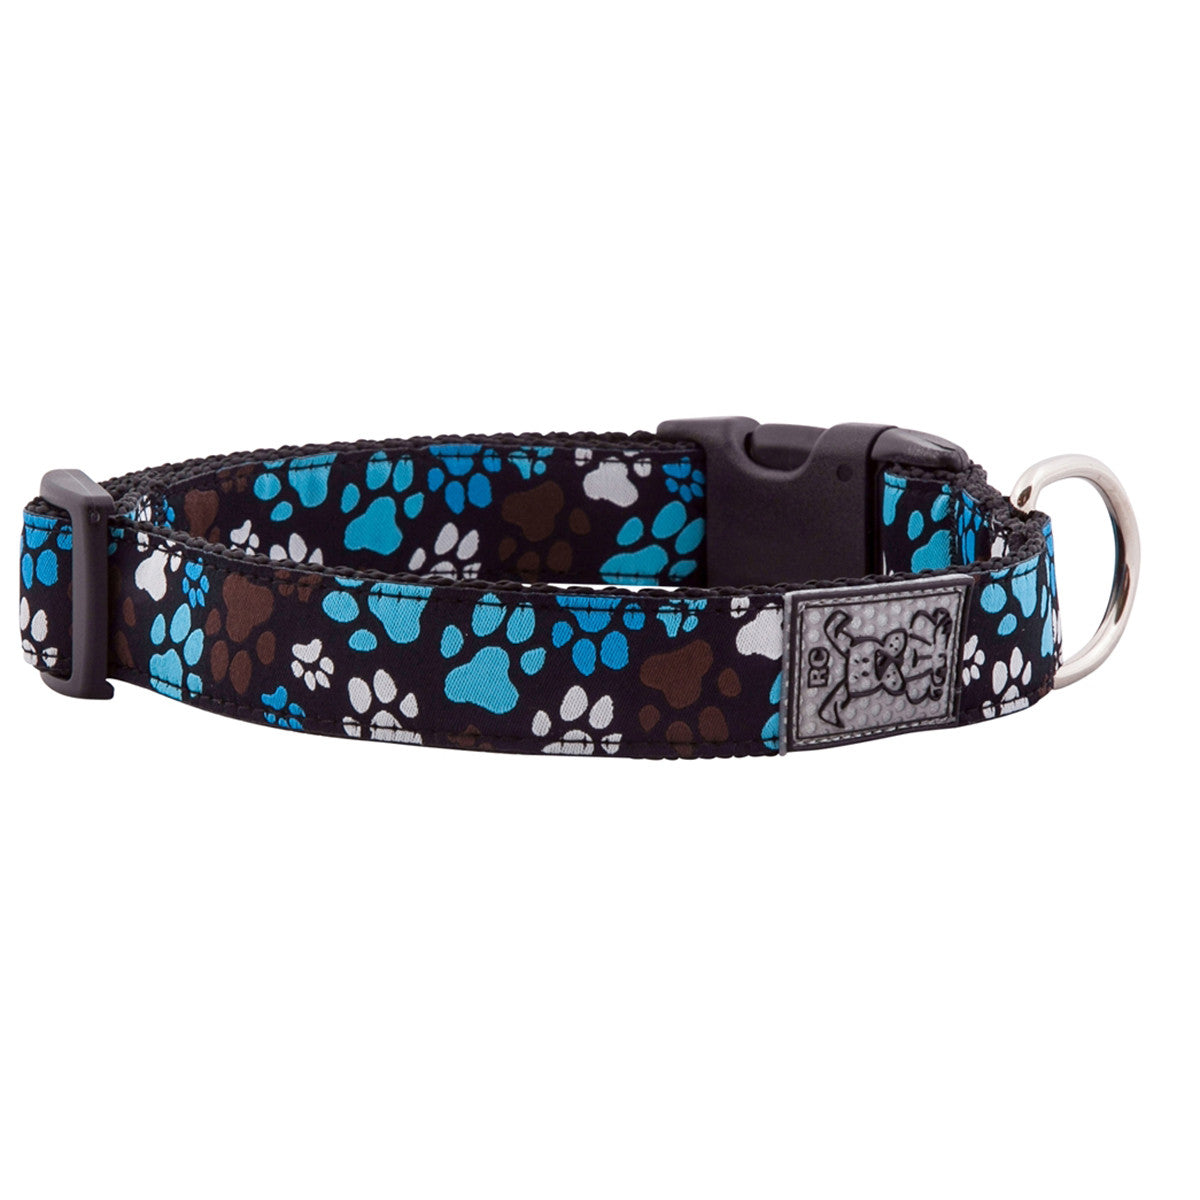 Pitter Patter Adjustable Clip Dog Collar by RC Pet - Chocolate - Dog toys